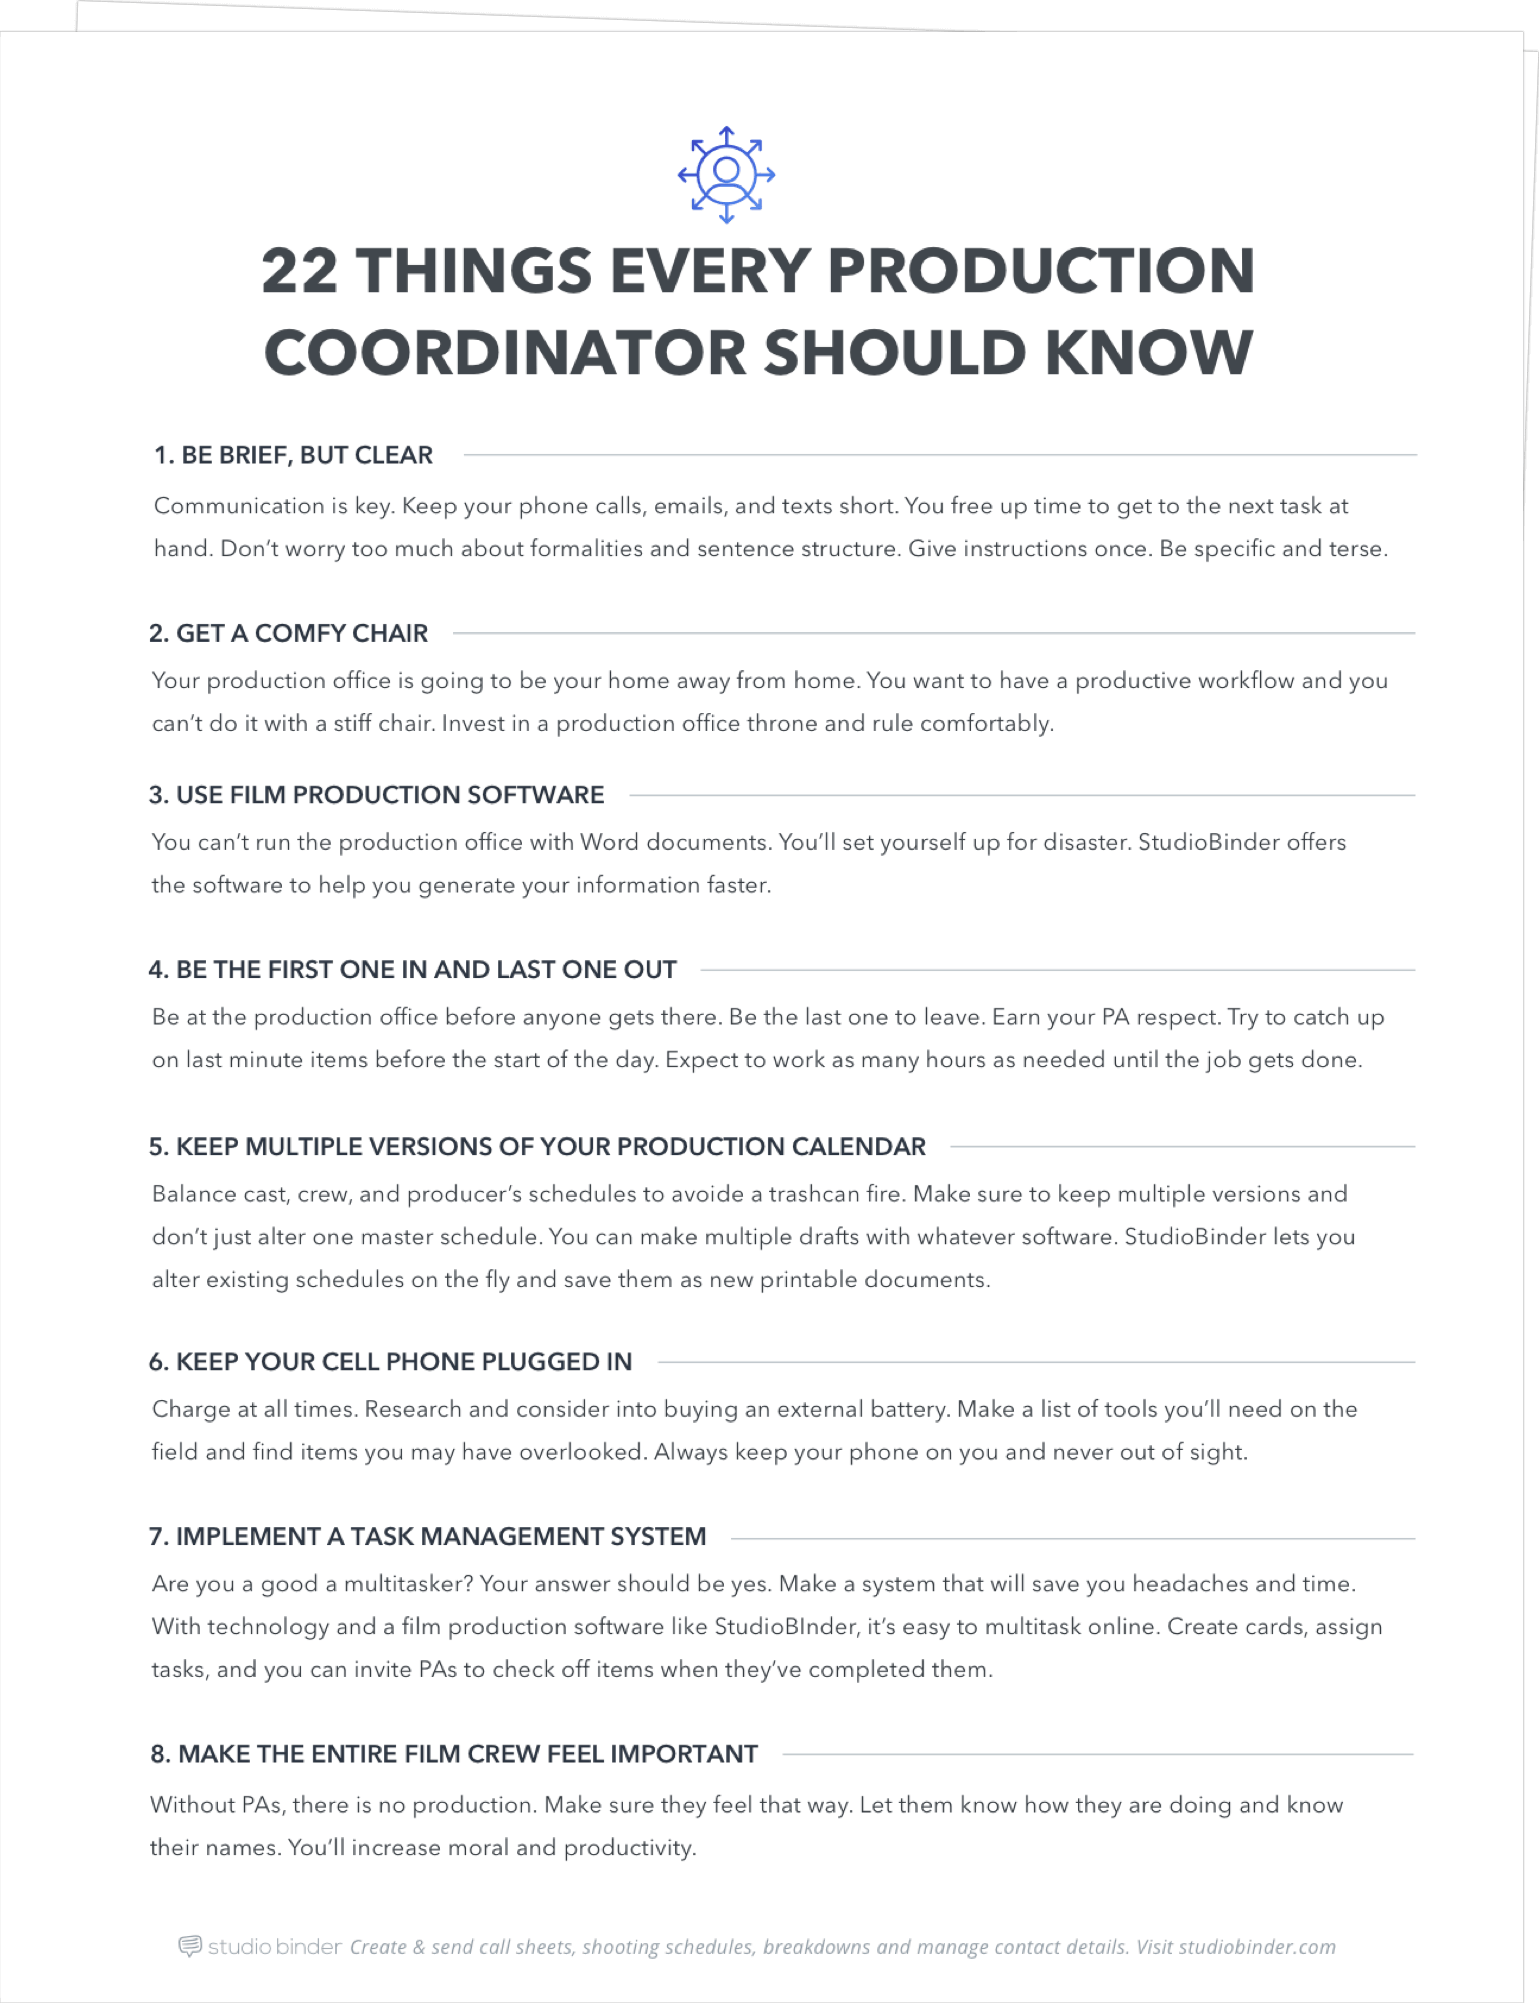 22 things every working production coordinator should know